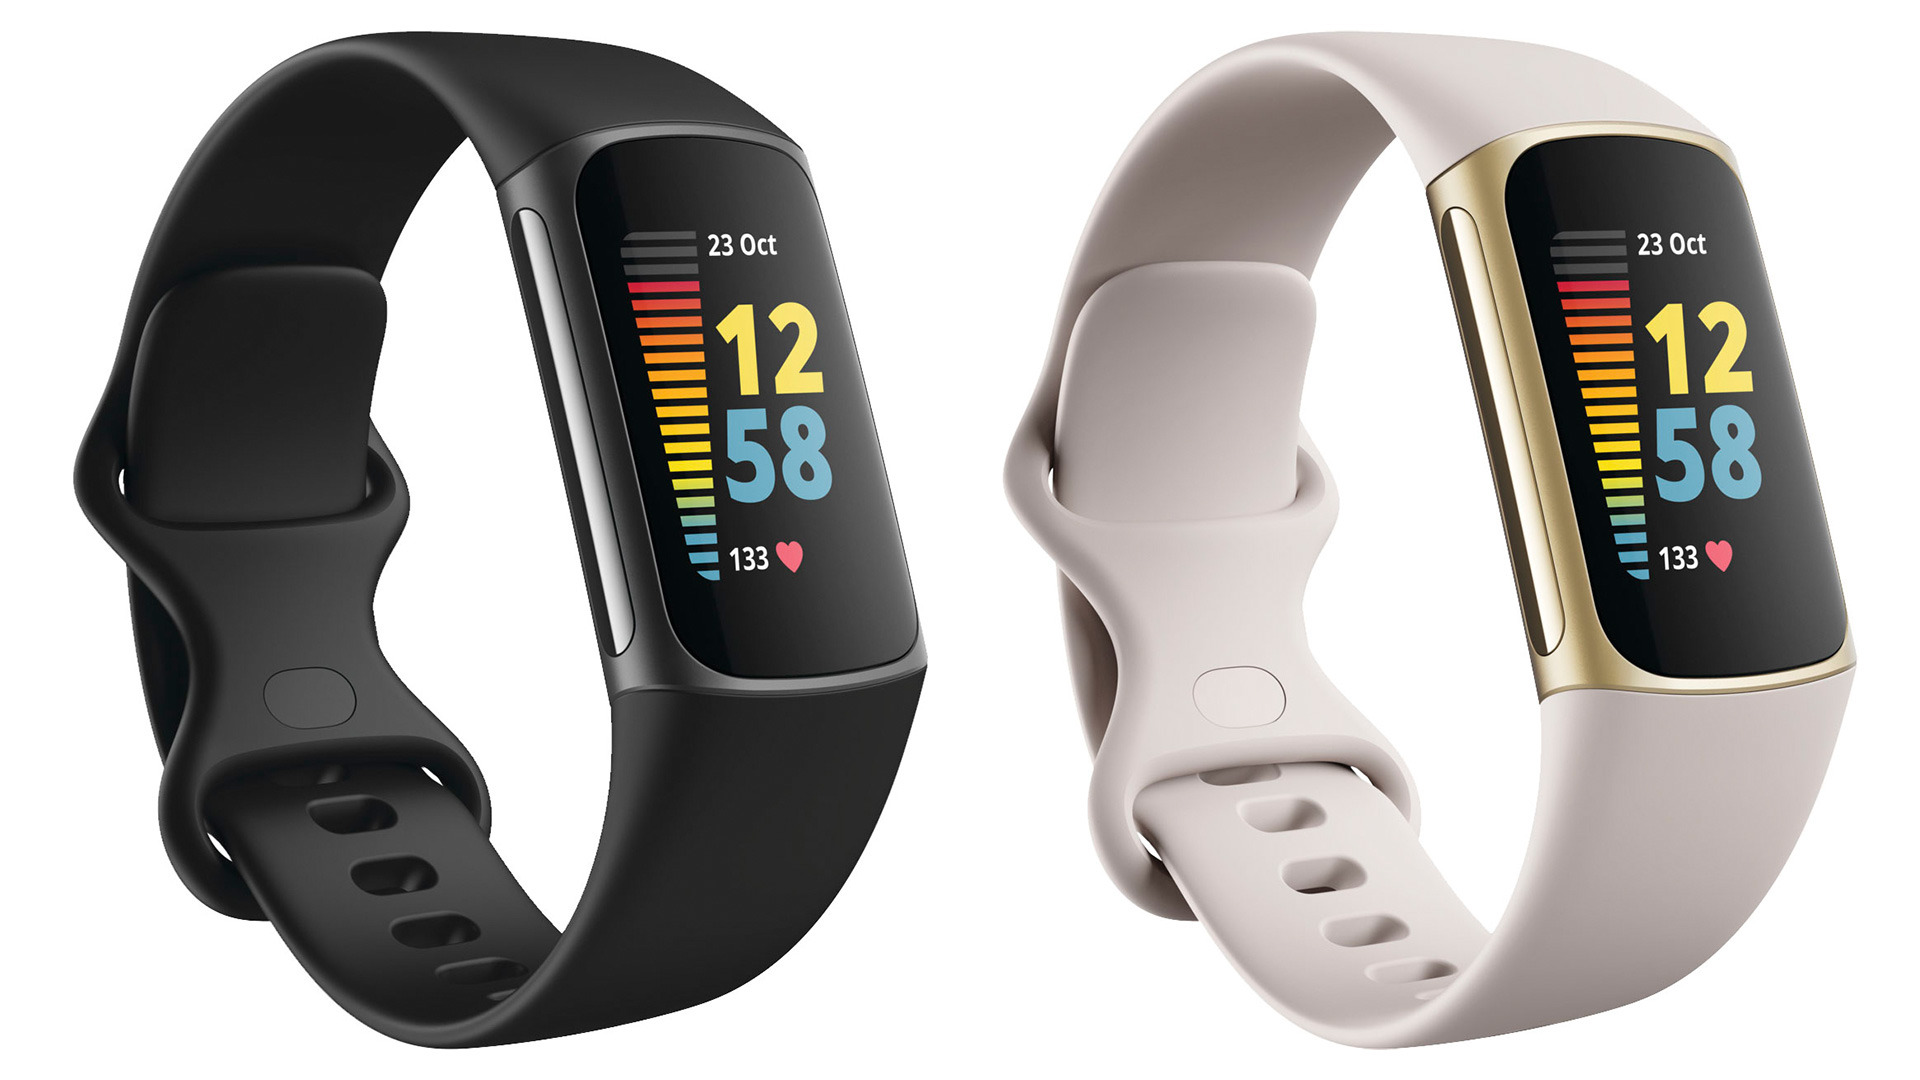 smartwatch, Uhr, Wearables, Fitness-Tracker, Fitness-Band, Smartband, Fitbit, Charge 5